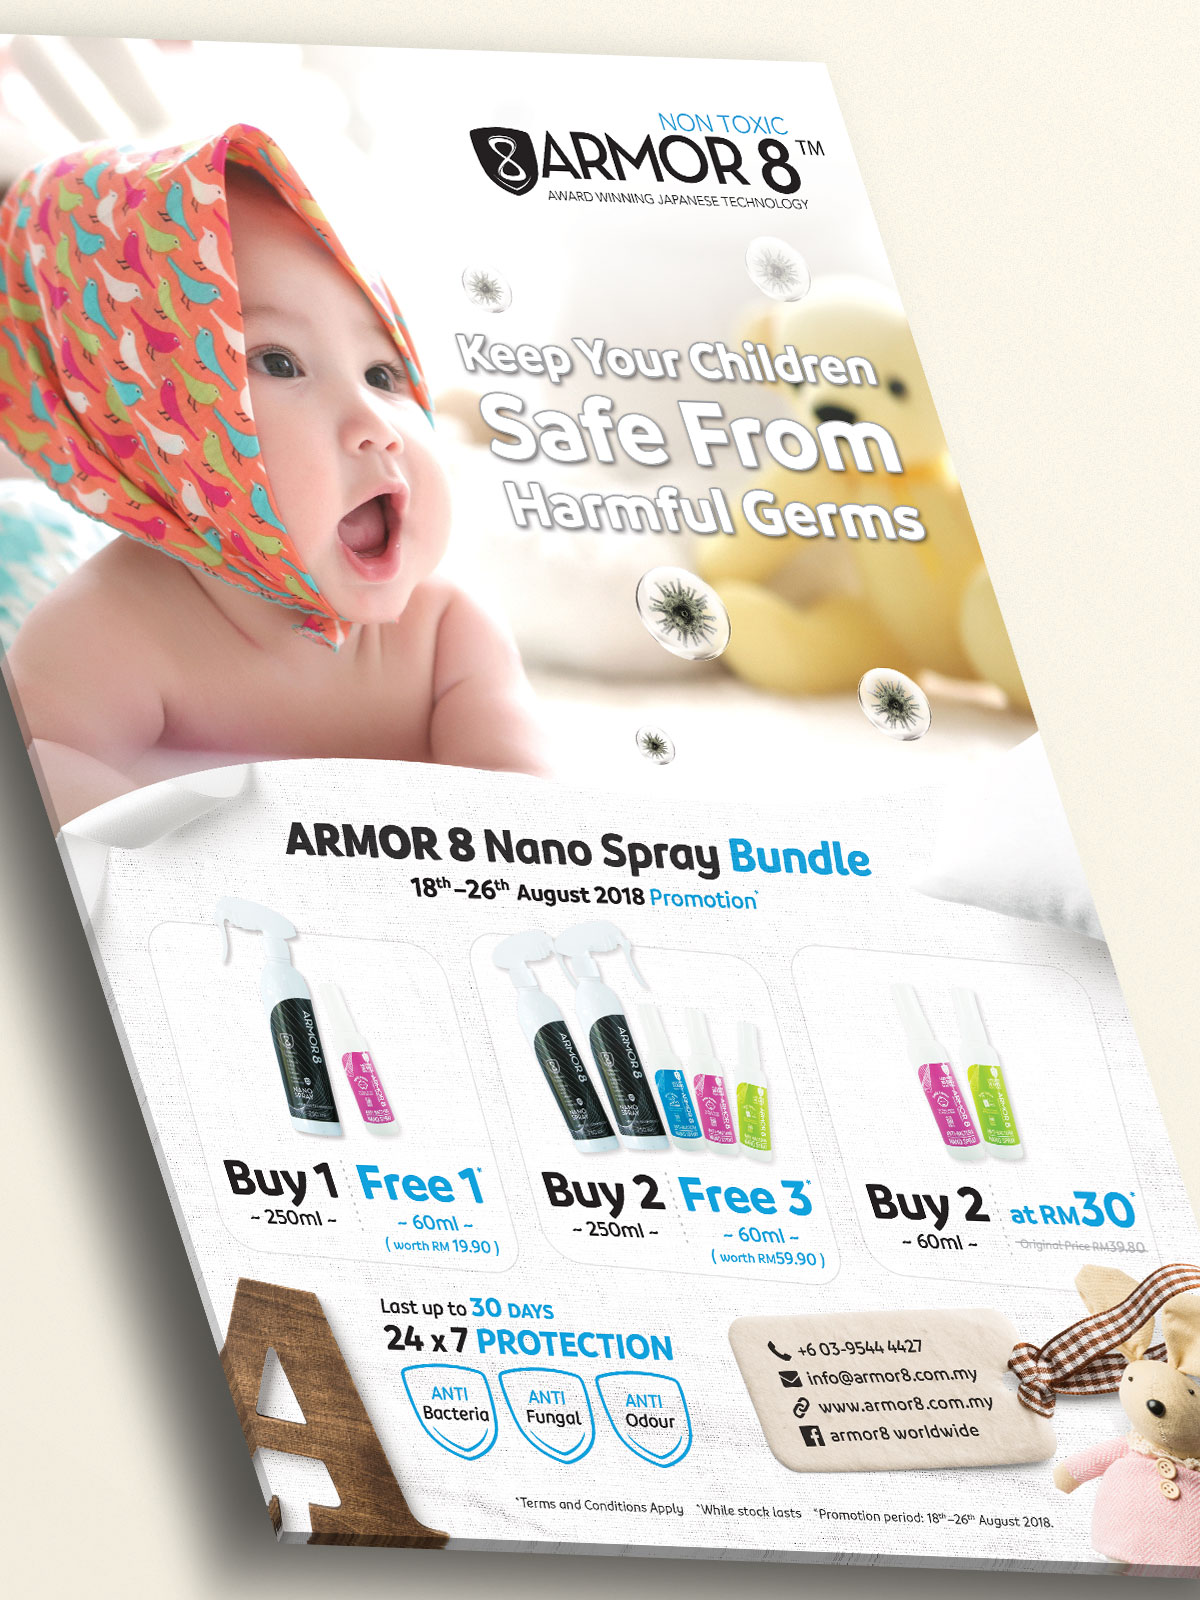 Armor8 Keeps Your Children Safe From Harmful Germs Poster Design 02